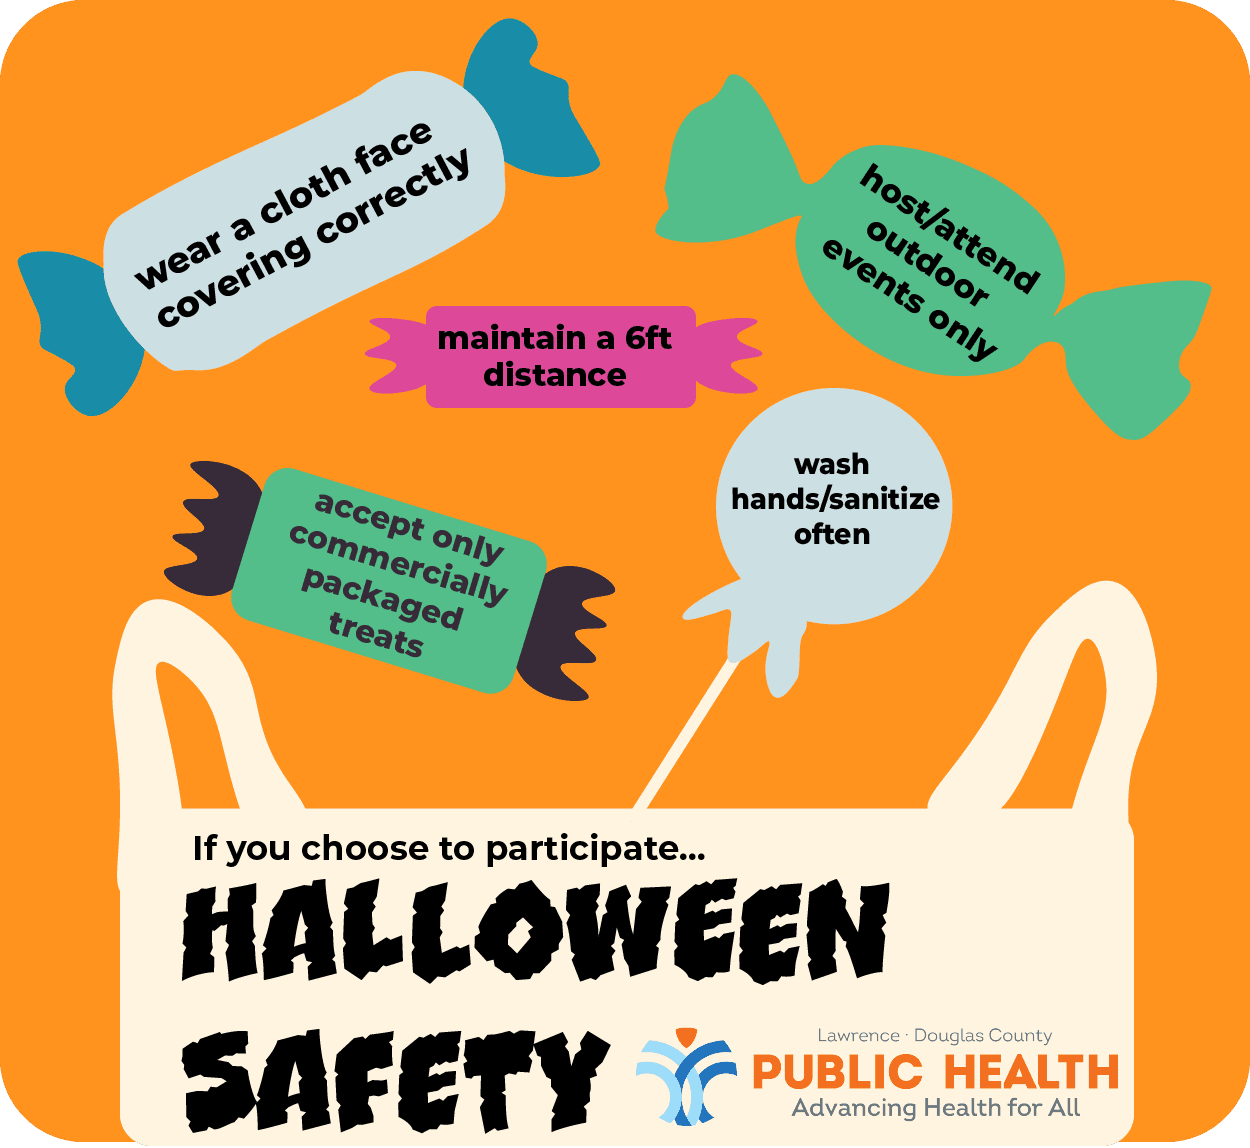 covid-Halloween-safety